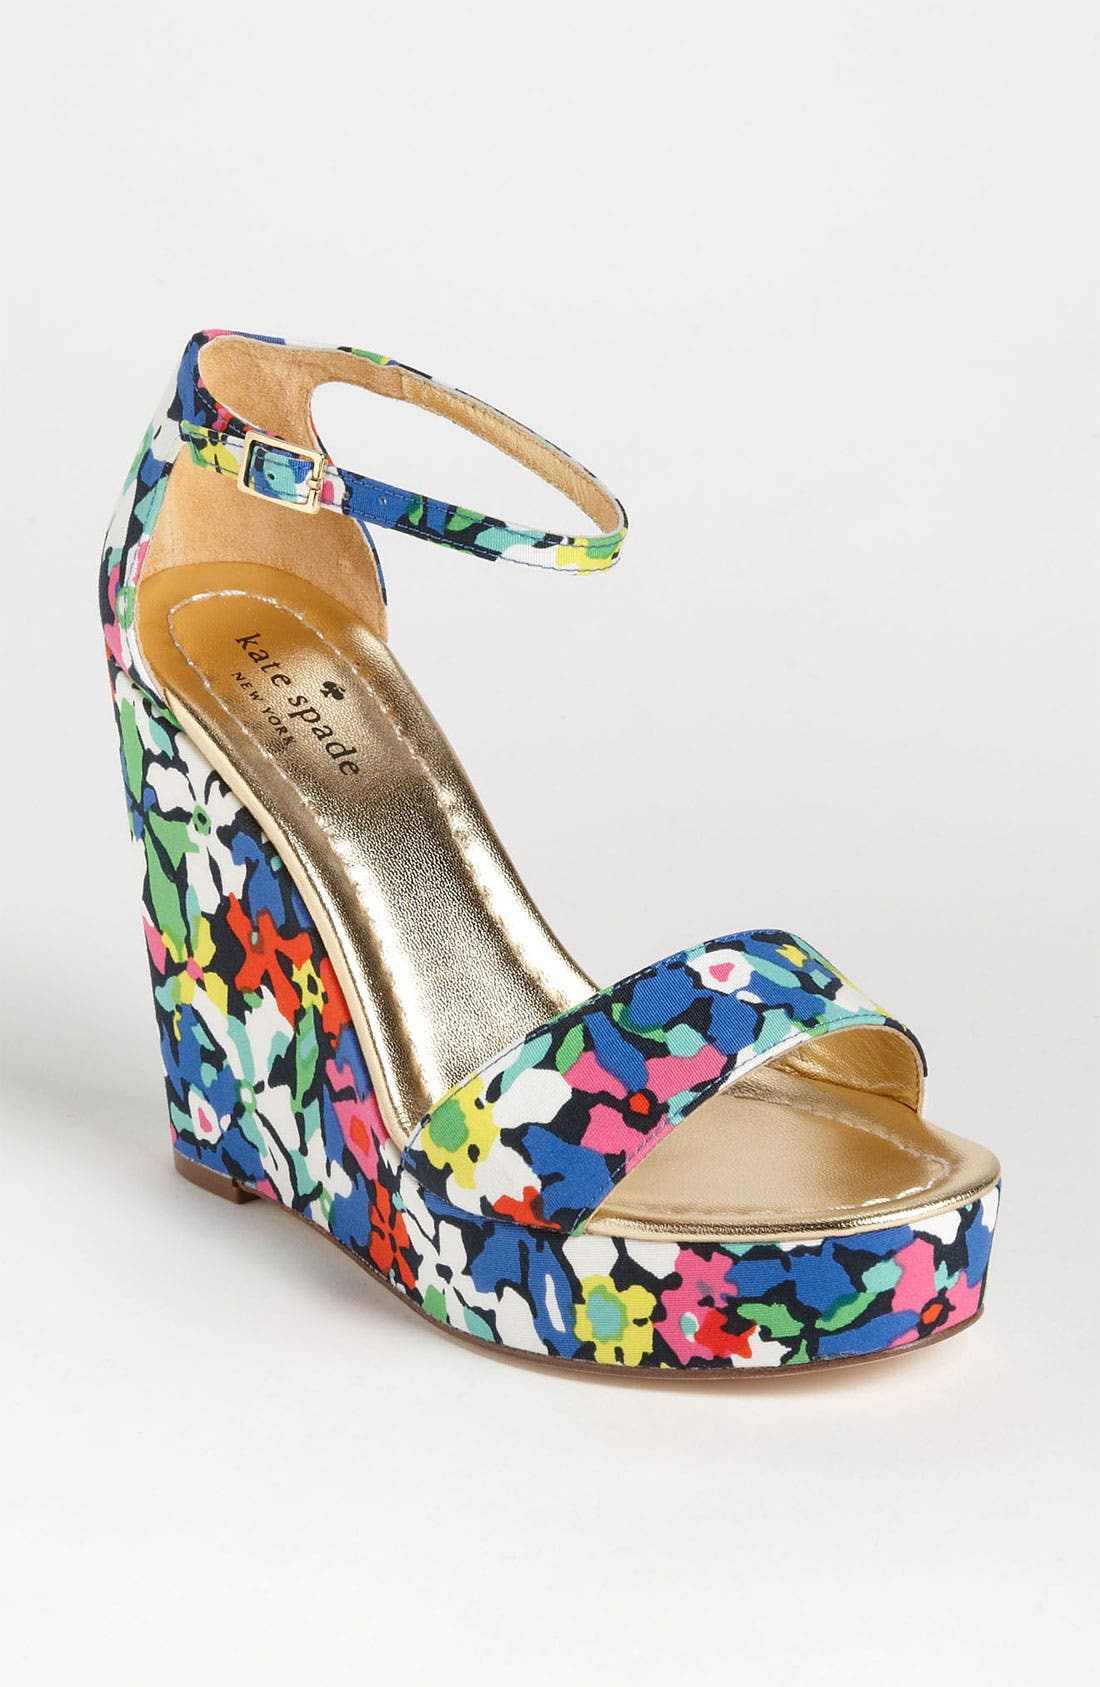 Alternate Image 1 Selected - kate spade new york 'dabney' wedge sandal